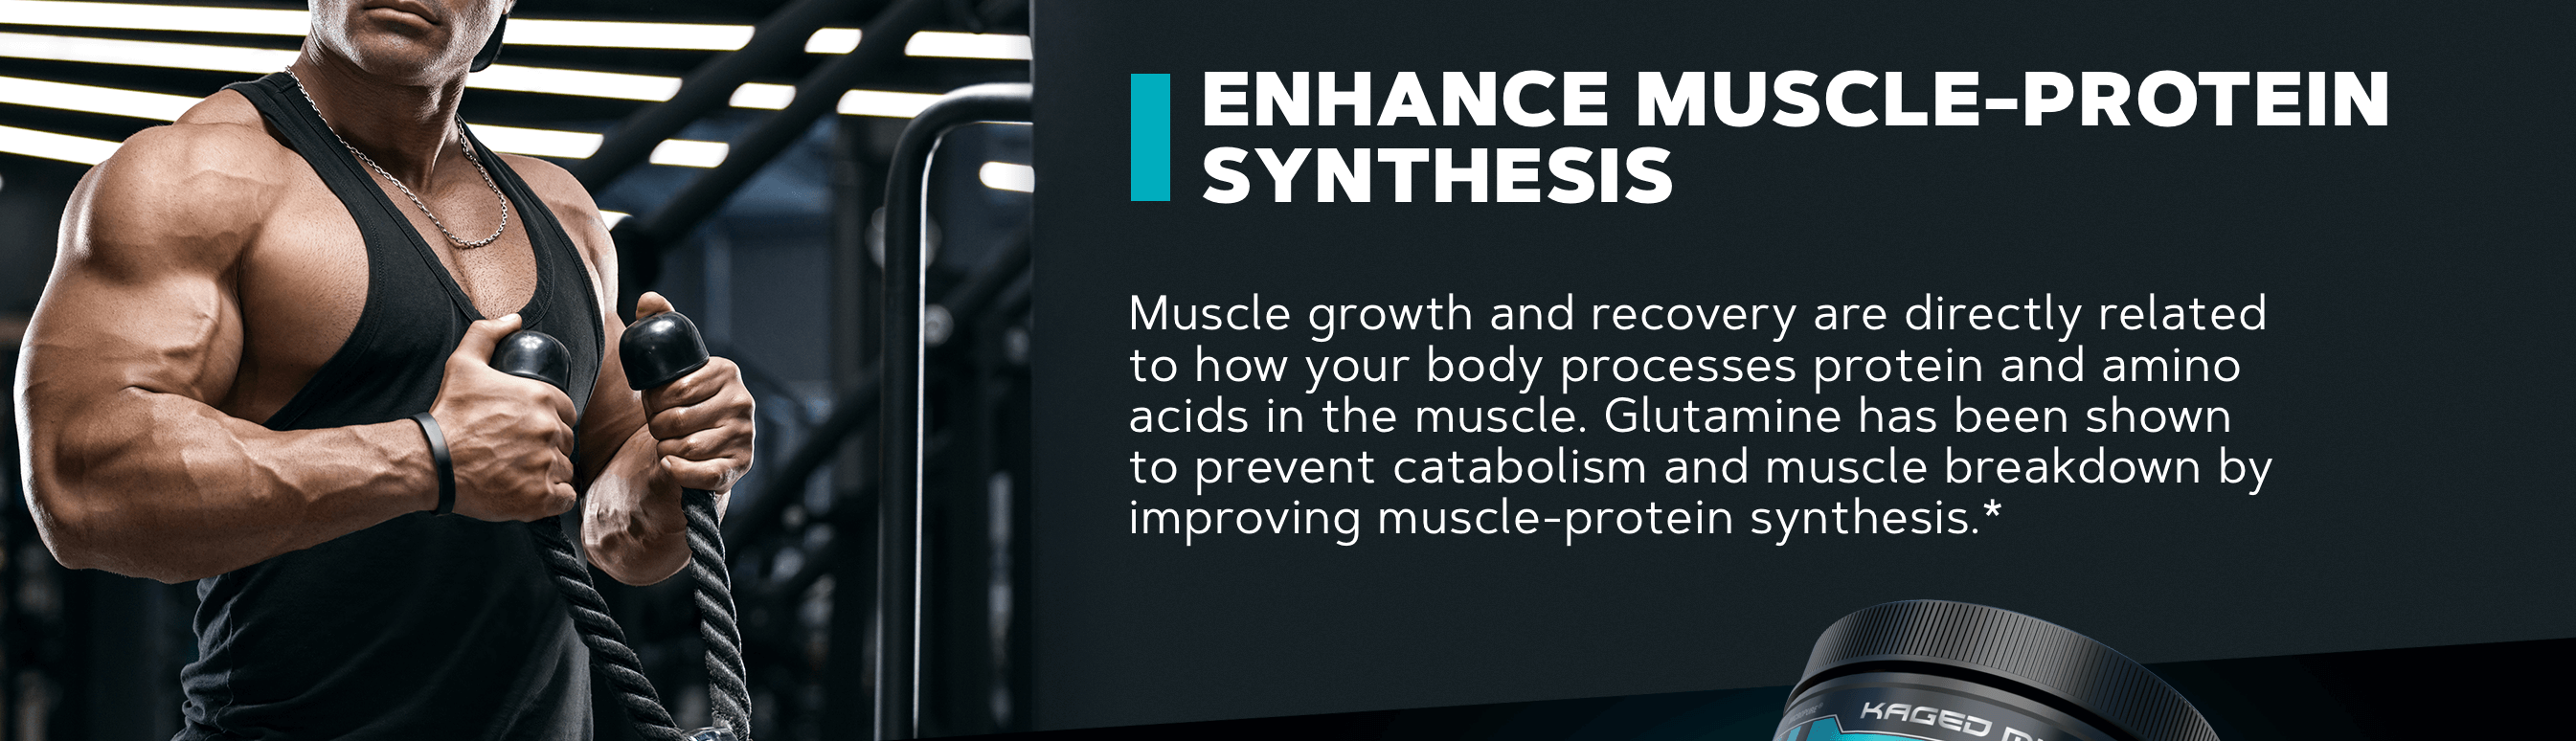 ENHANCE MUSCLE-PROTEIN SYNTHESIS Muscle growth and recovery are directly related to how your body processes protein and amino acids in the muscle. Glutamine has been shown to prevent catabolism and muscle breakdown by improving muscle-protein synthesis.*